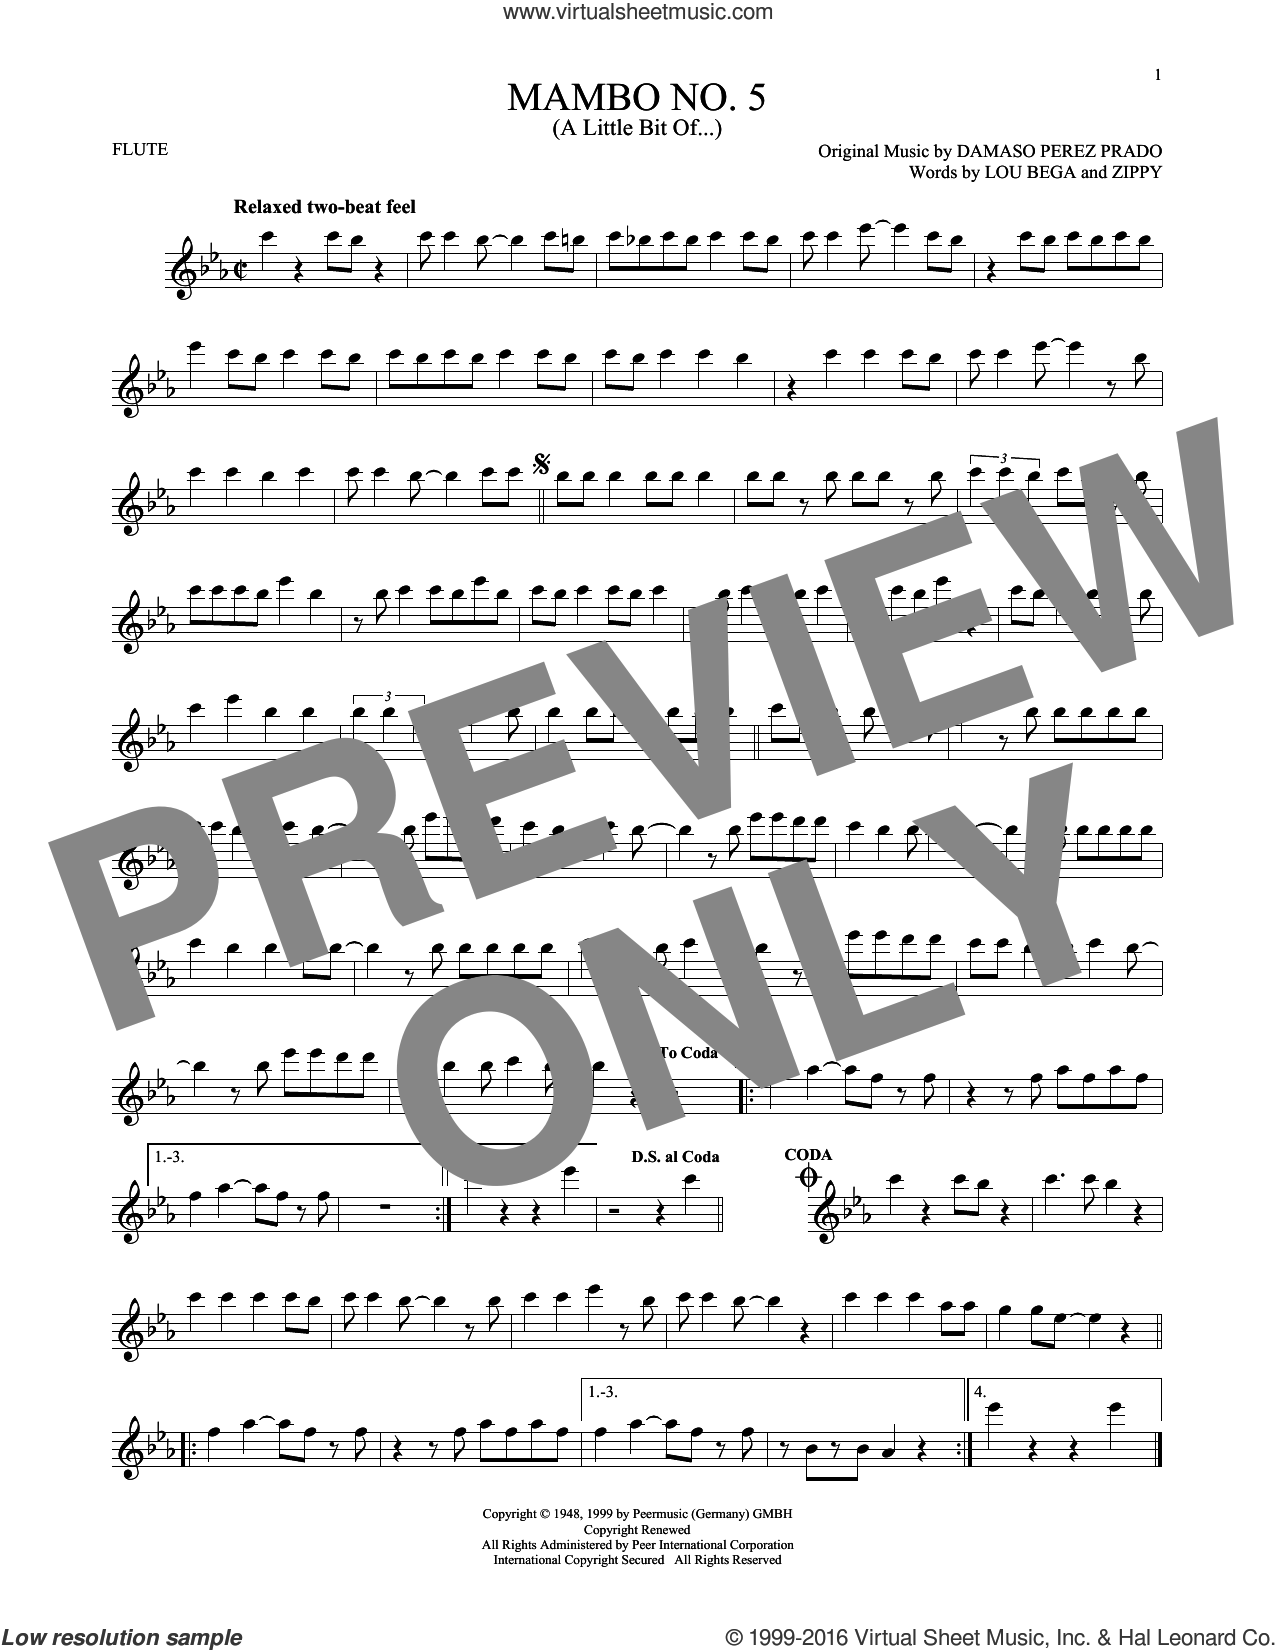 Mambo No. 5 (A Little Bit Of...) sheet music for flute solo by Lou Bega, Damaso Perez Prado and Zippy, intermediate. Score Image Preview.